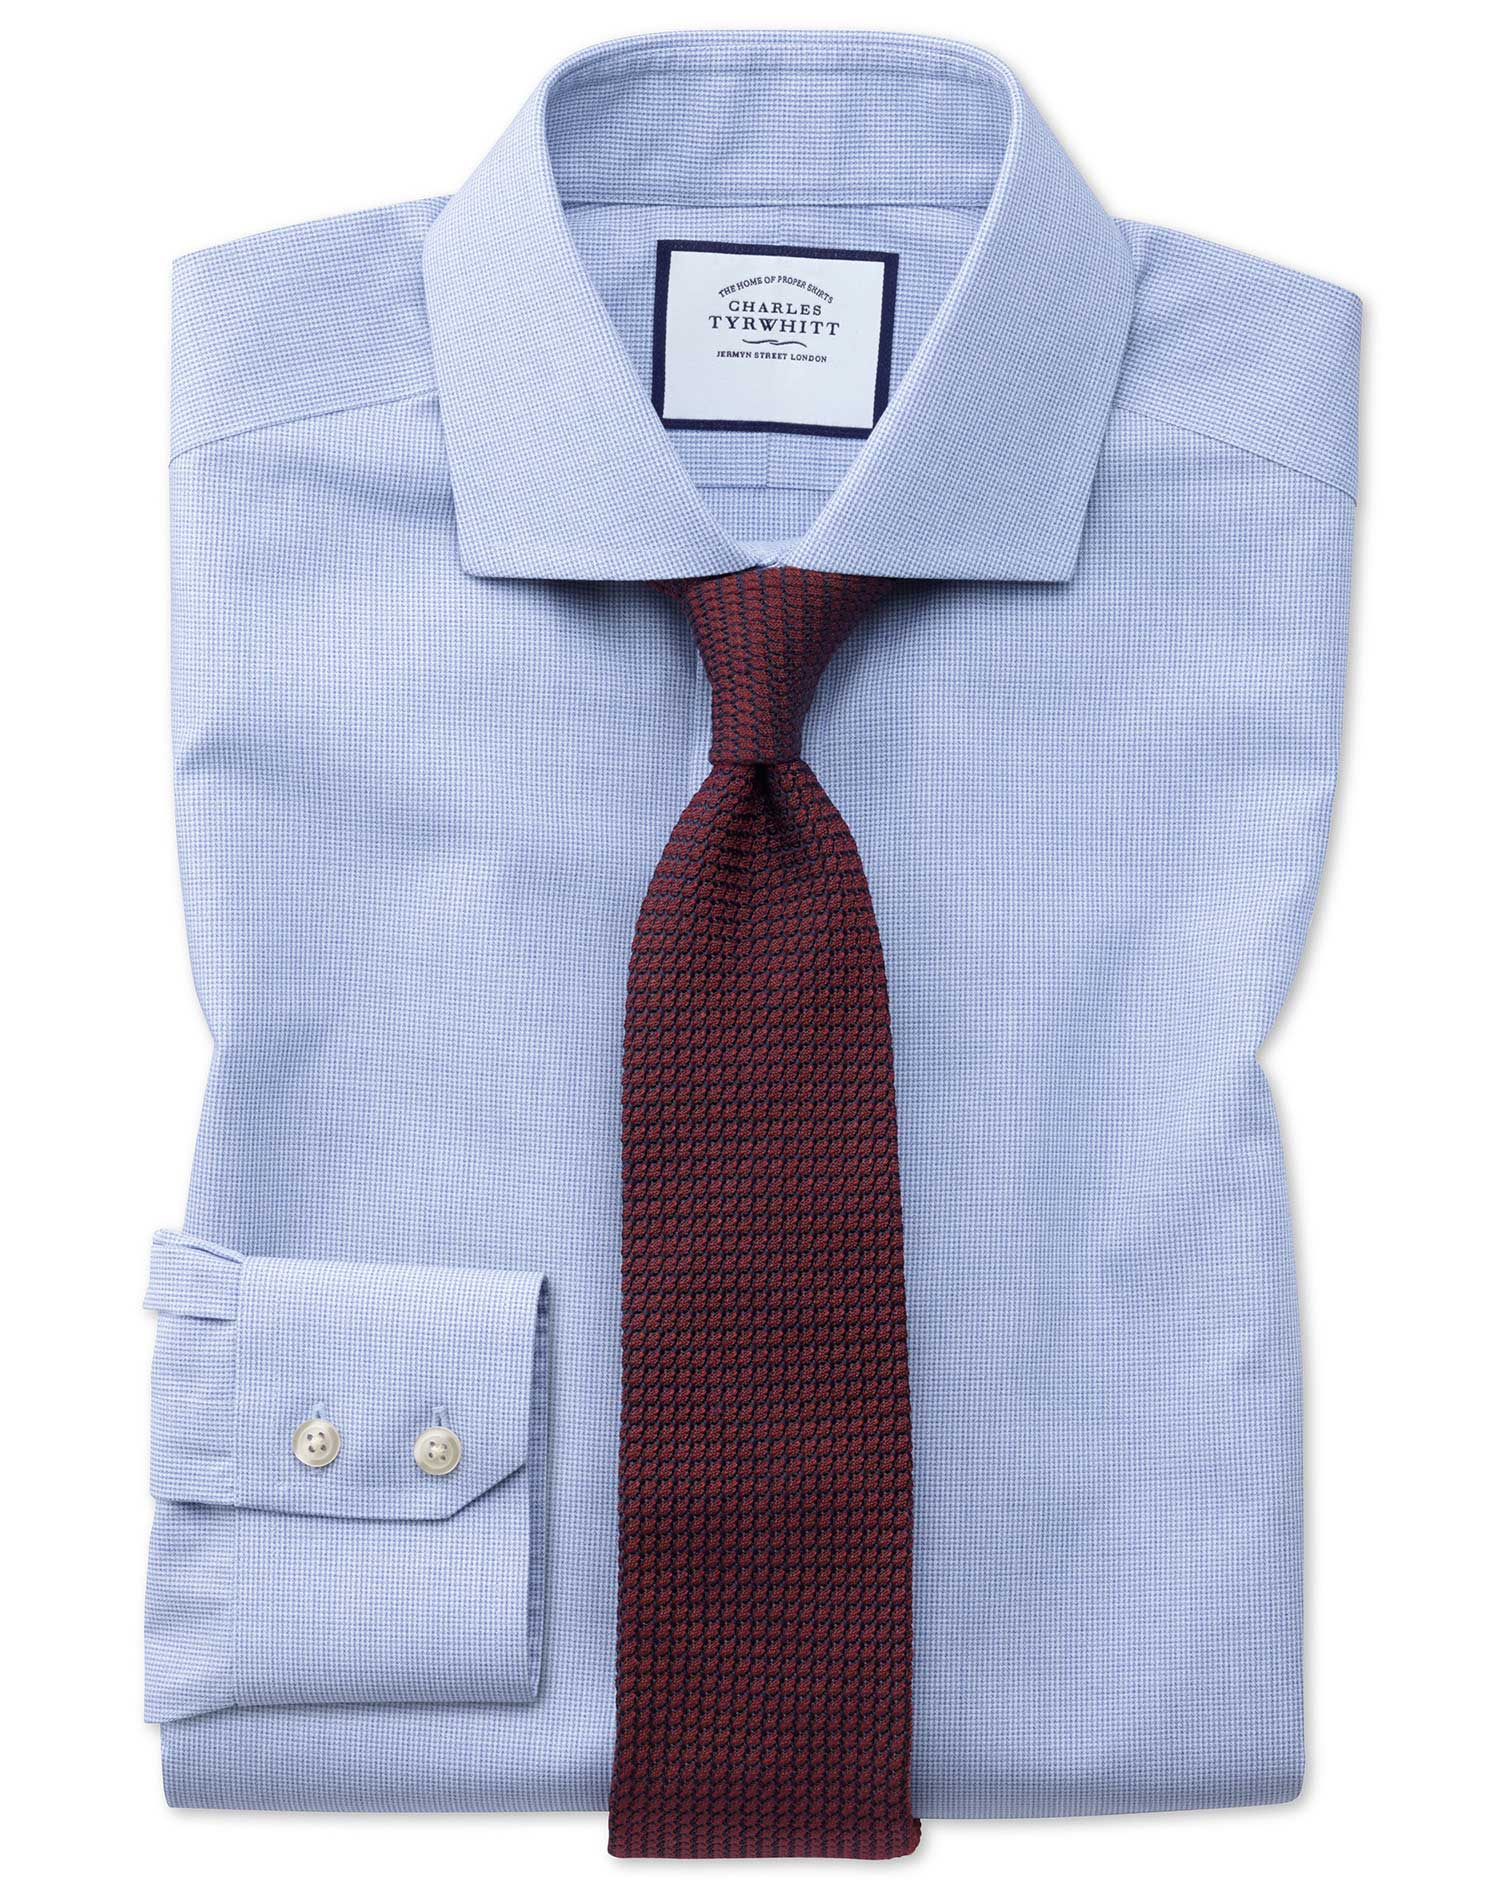 Extra Slim Fit Non-Iron Cutaway Collar Sky Blue Puppytooth Cotton Formal Shirt Single Cuff Size 17/3